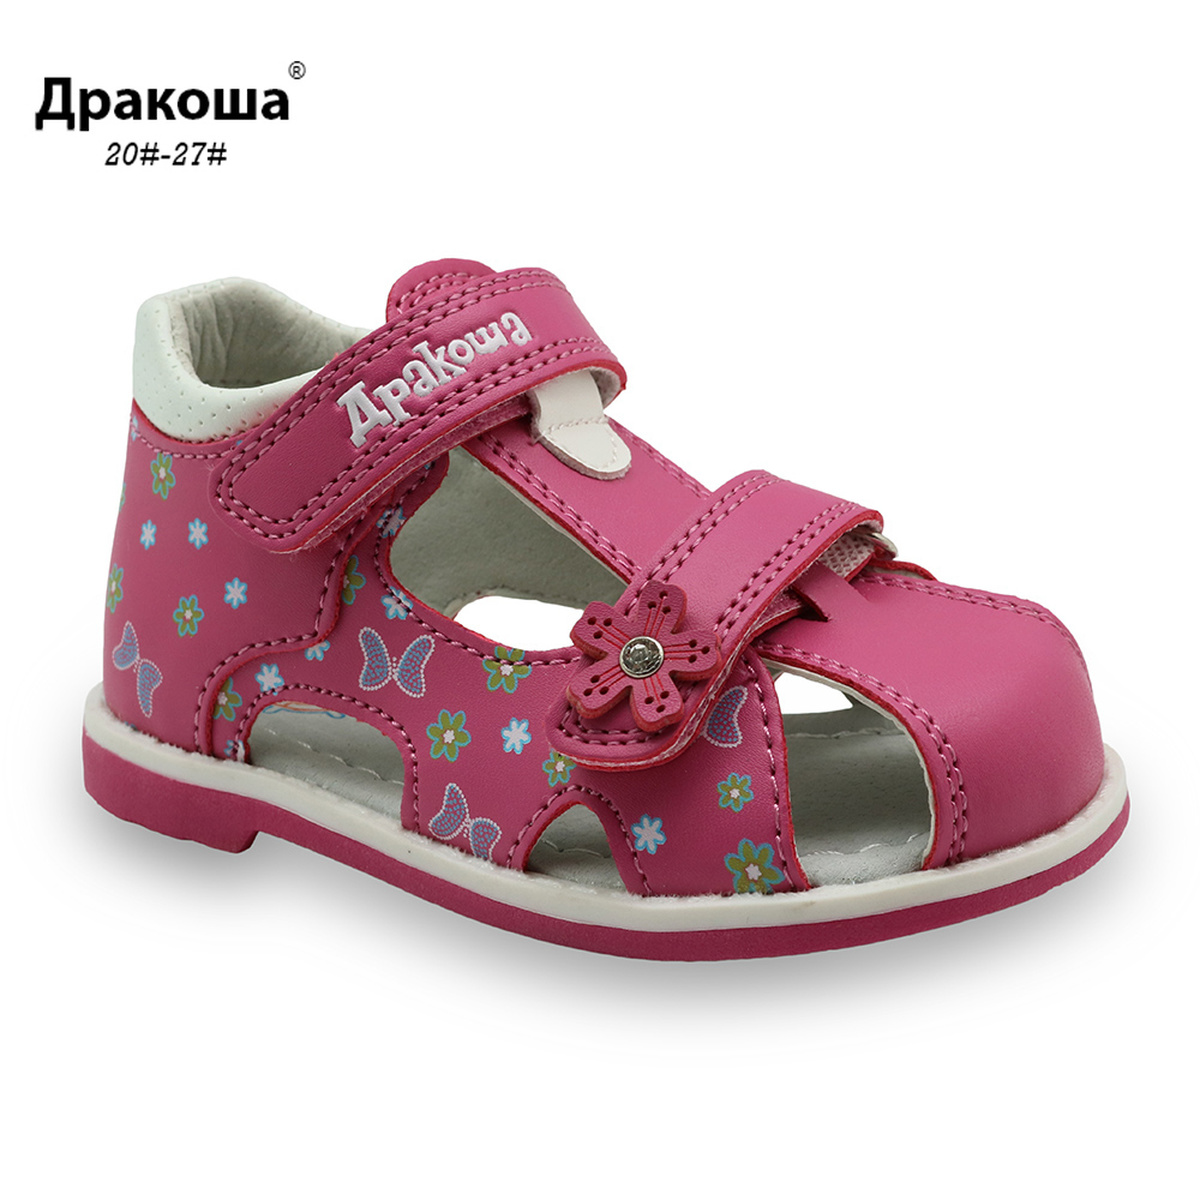 Apakowa Kids Sandals PU Double Hook&Loop Summer Sandals Cute Flower Print Arch Support Girls Toddler Sandals Children's Shoes